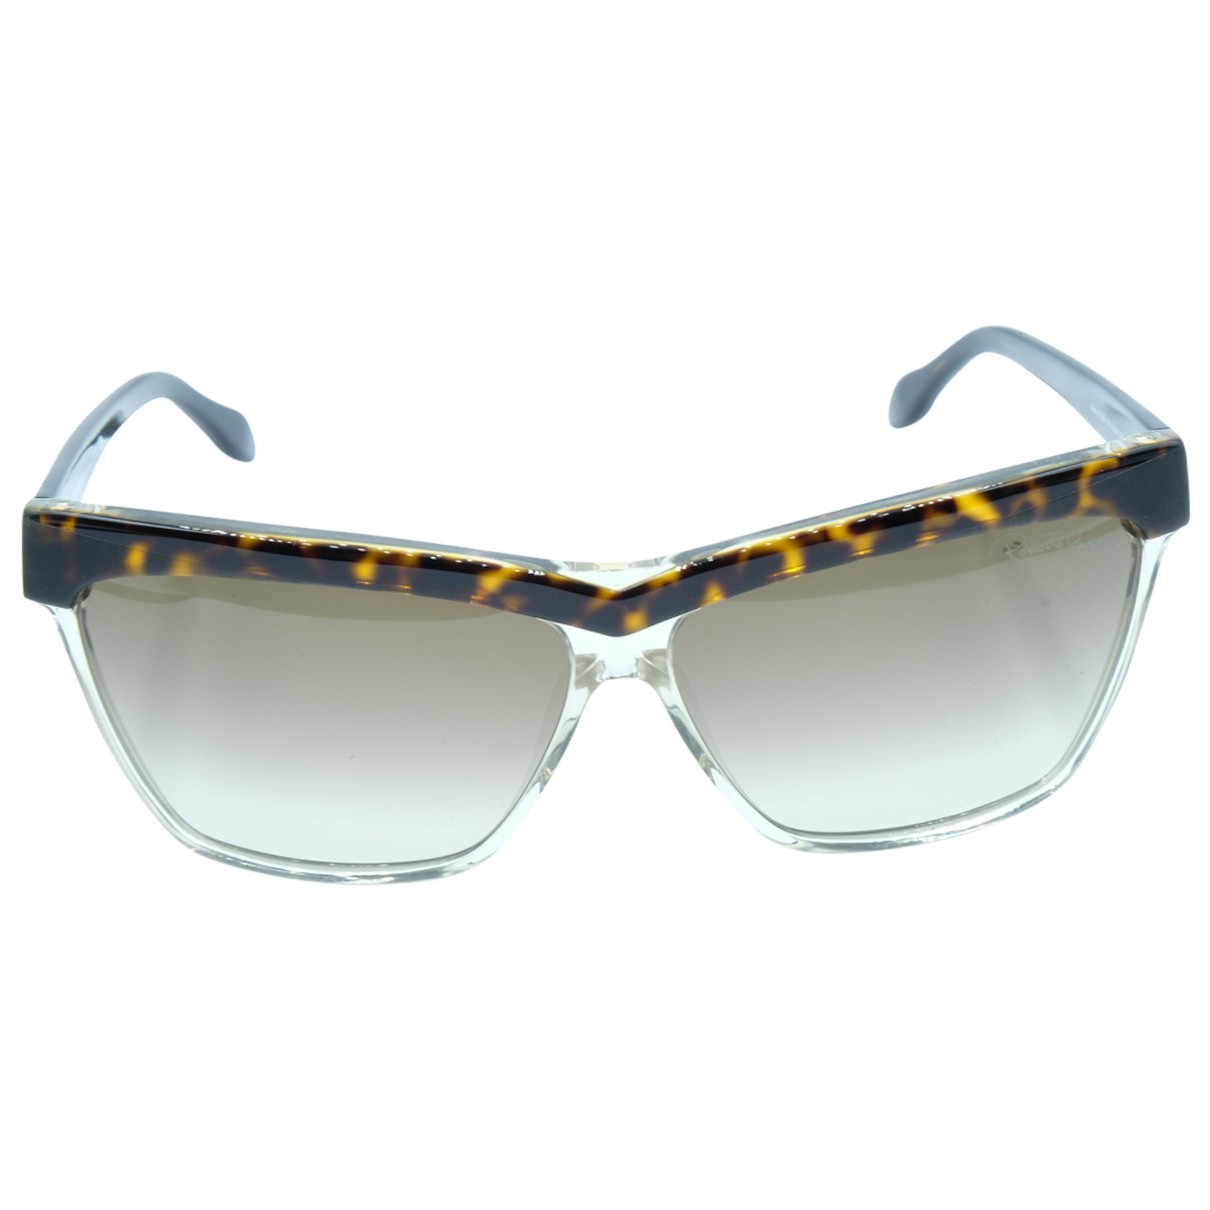 Roberto Cavalli N Brown Sunglasses for Women N